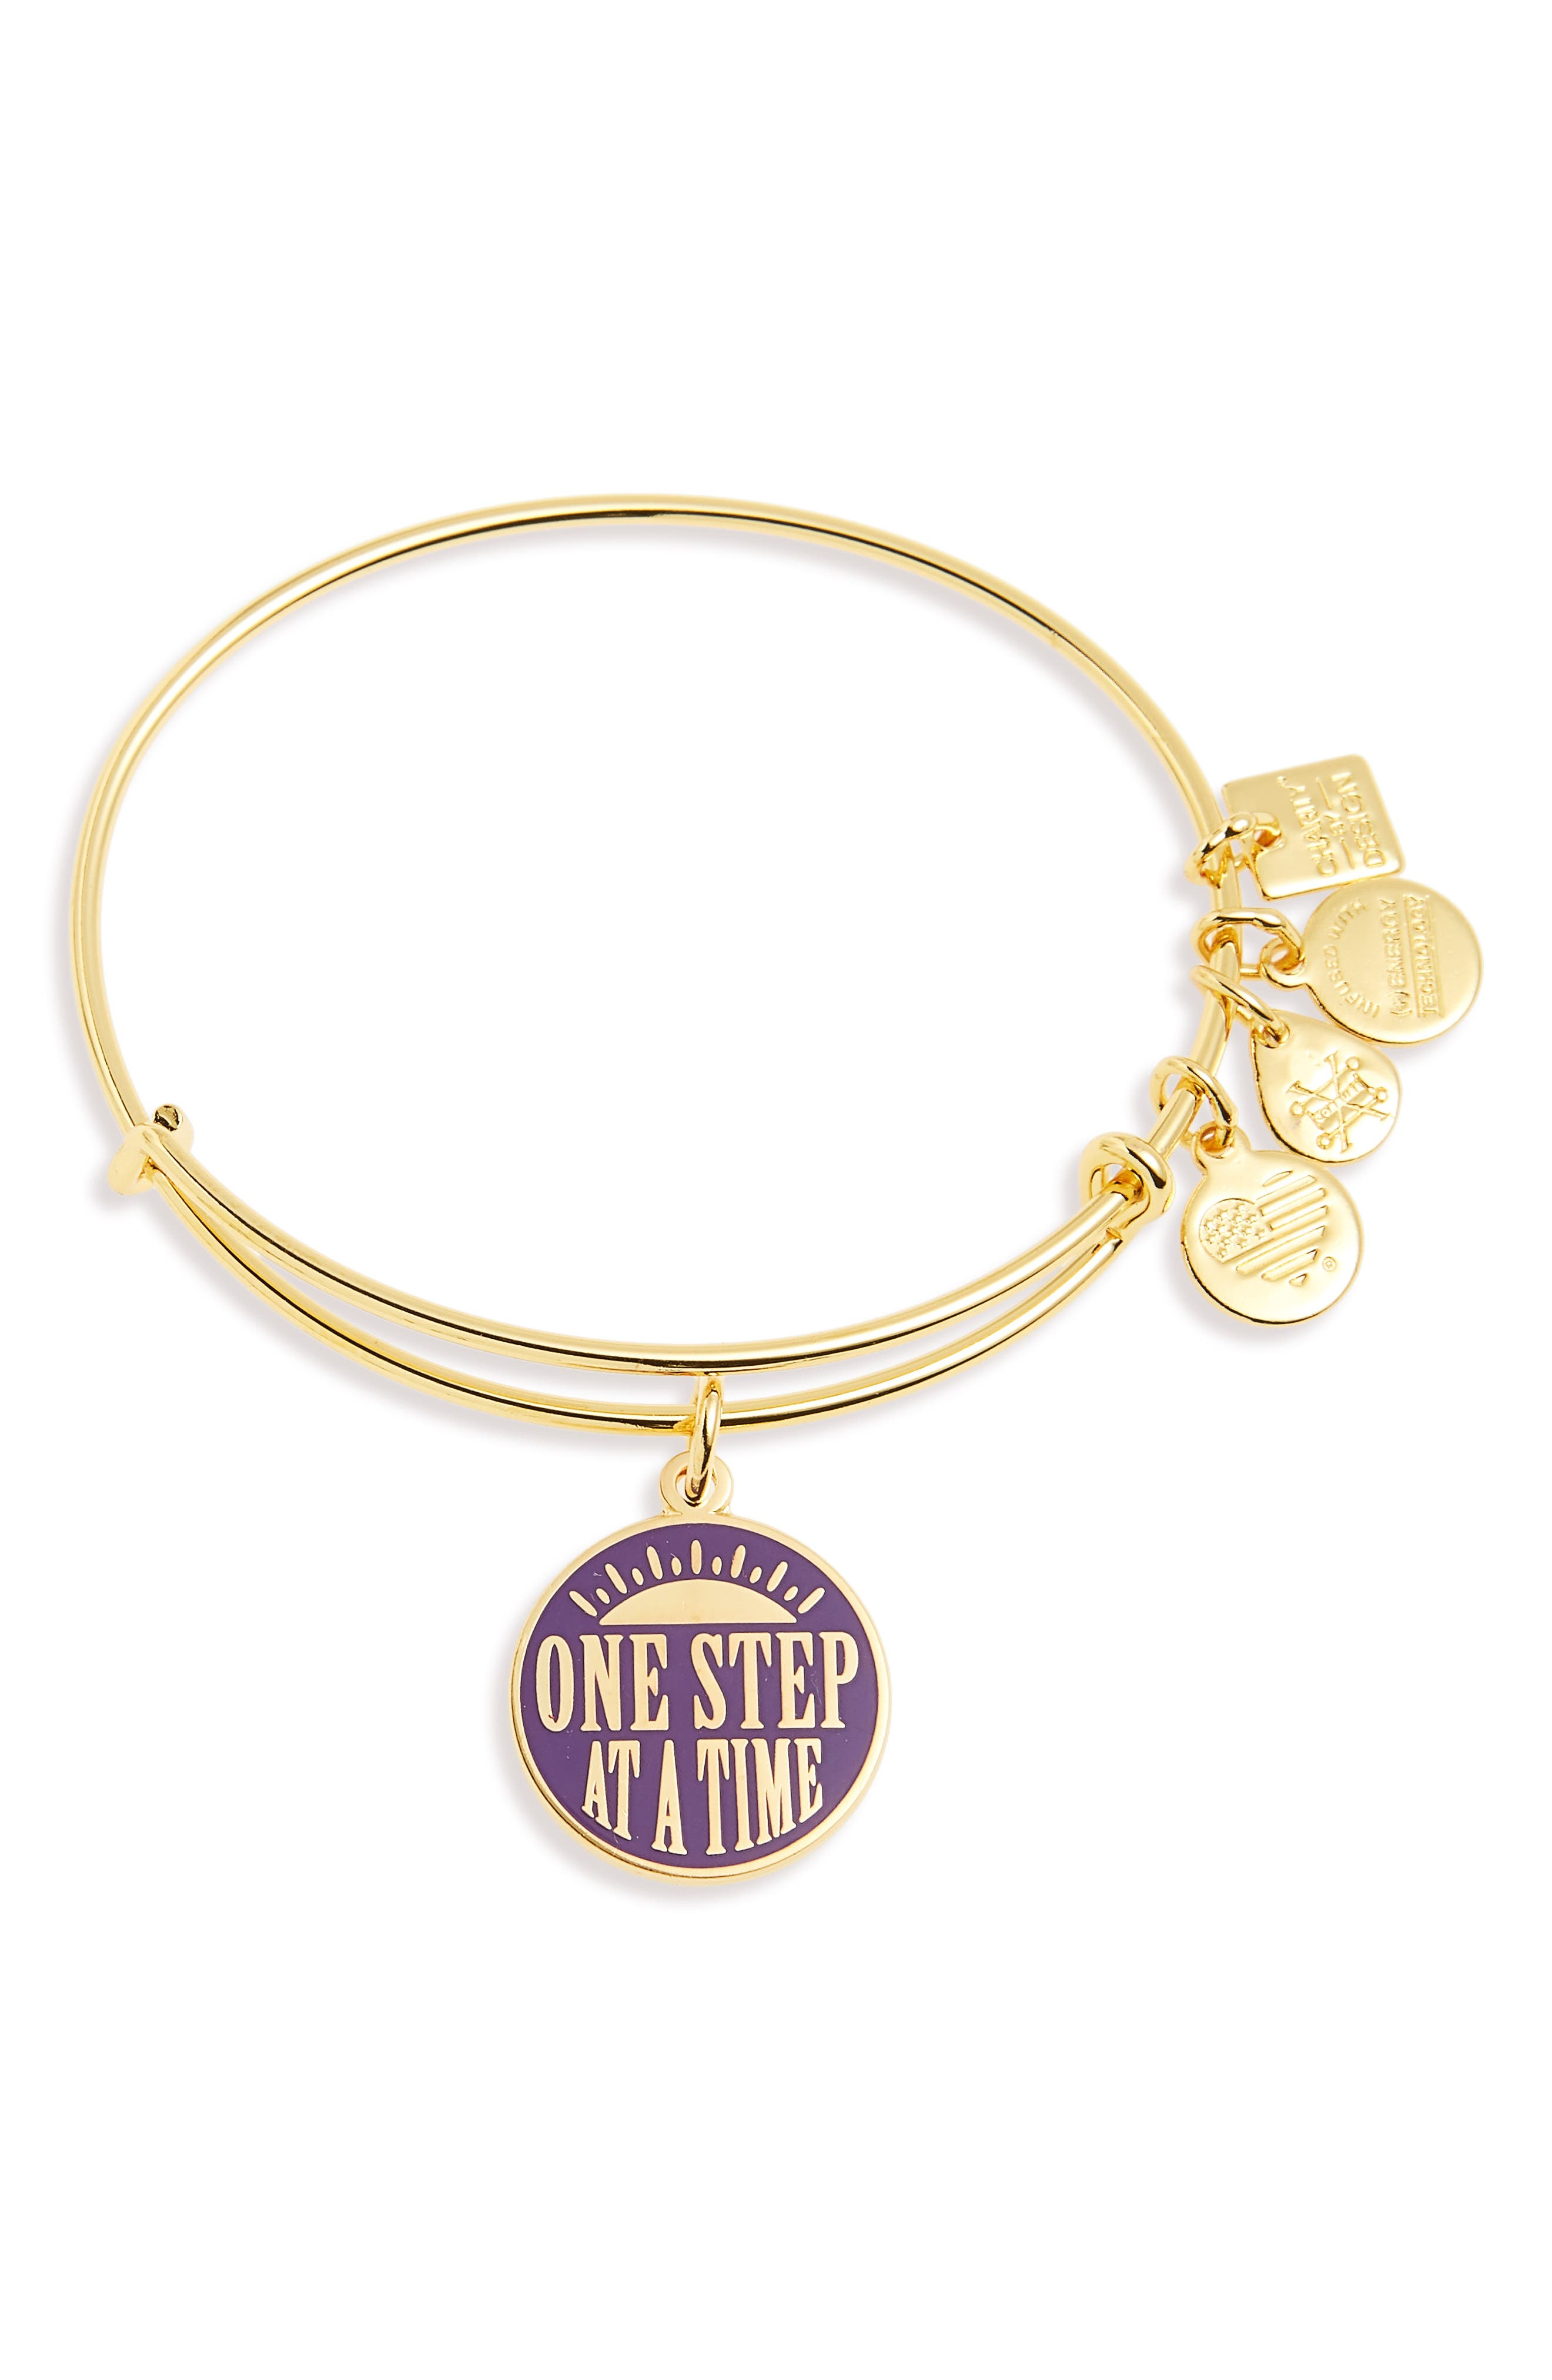 Kindred One Step at a Time Bangle,                         Main,                         color, Gold